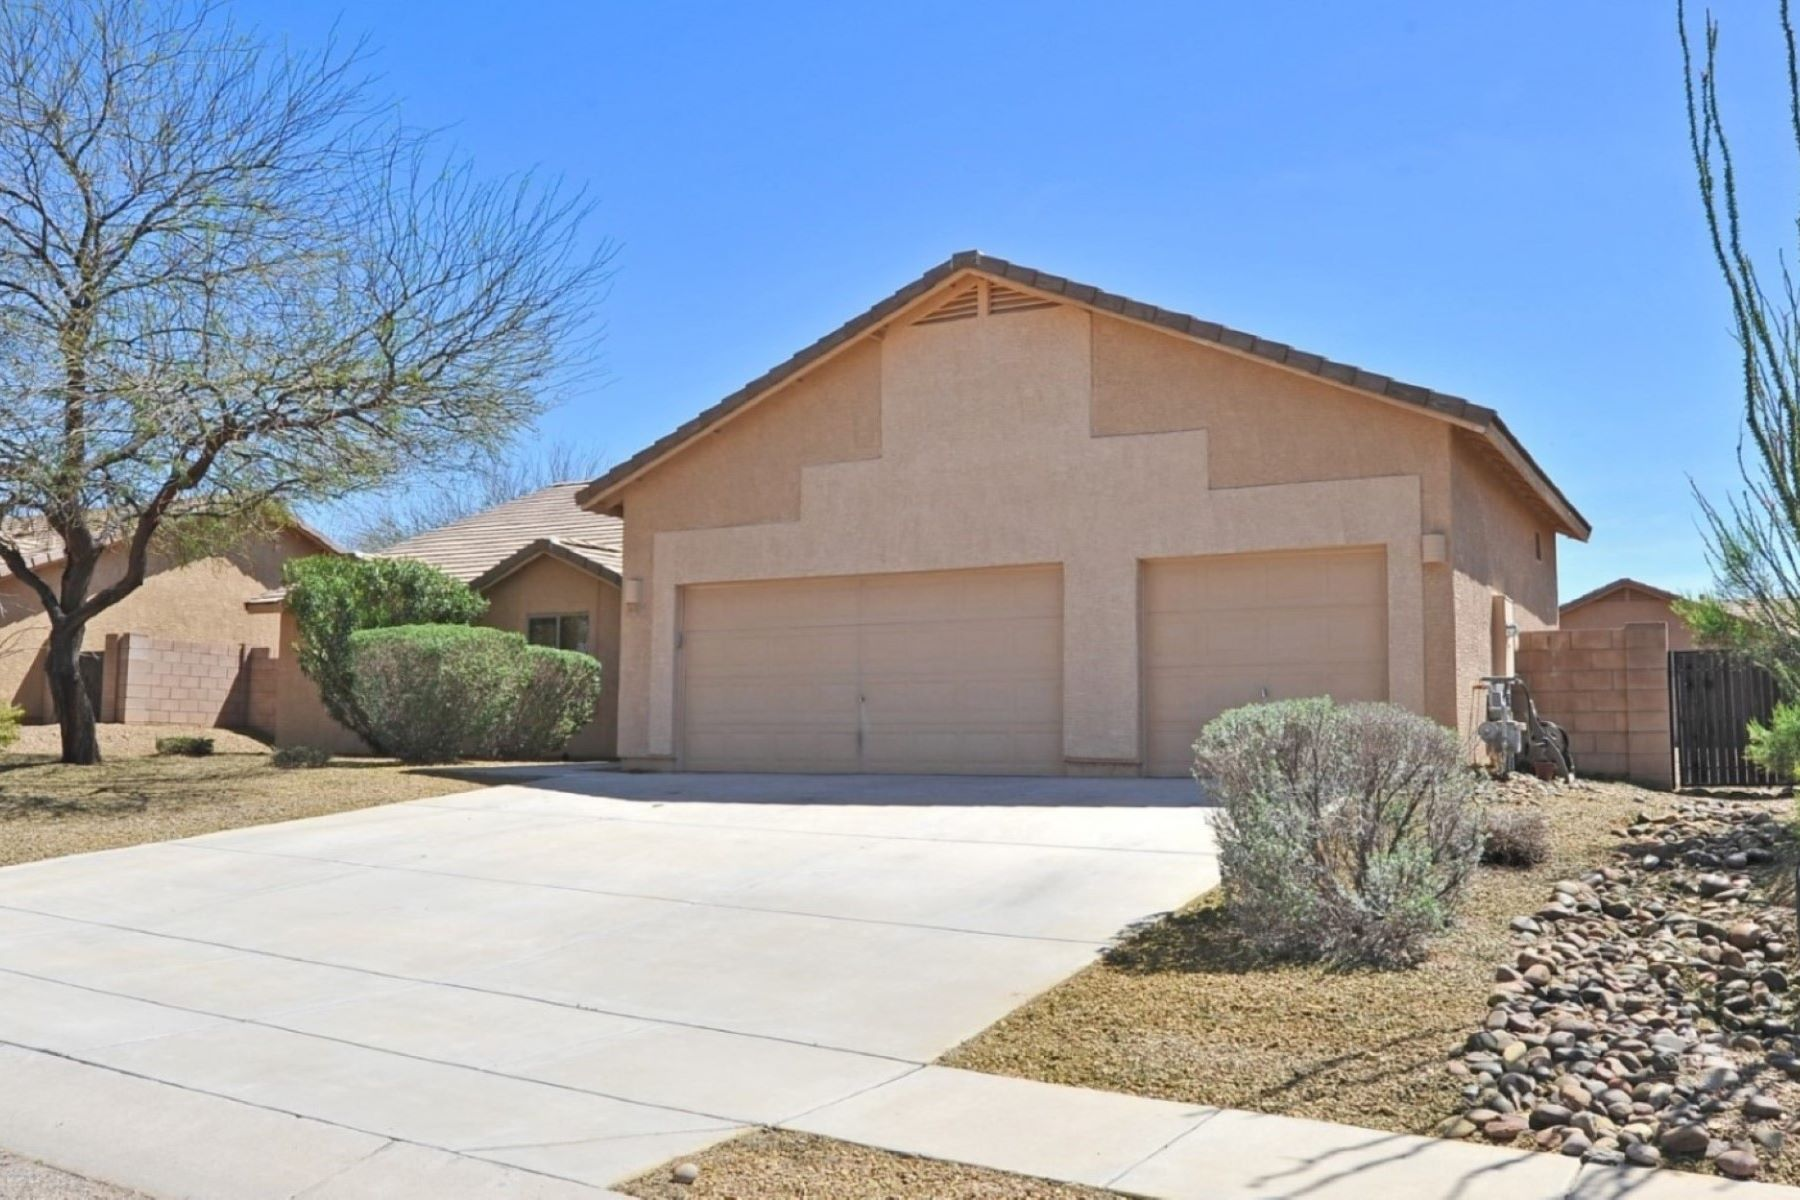 single family homes for Active at Natural Open Space Borders This Sweet Community 605 W Grantham Street Vail, Arizona 85641 United States